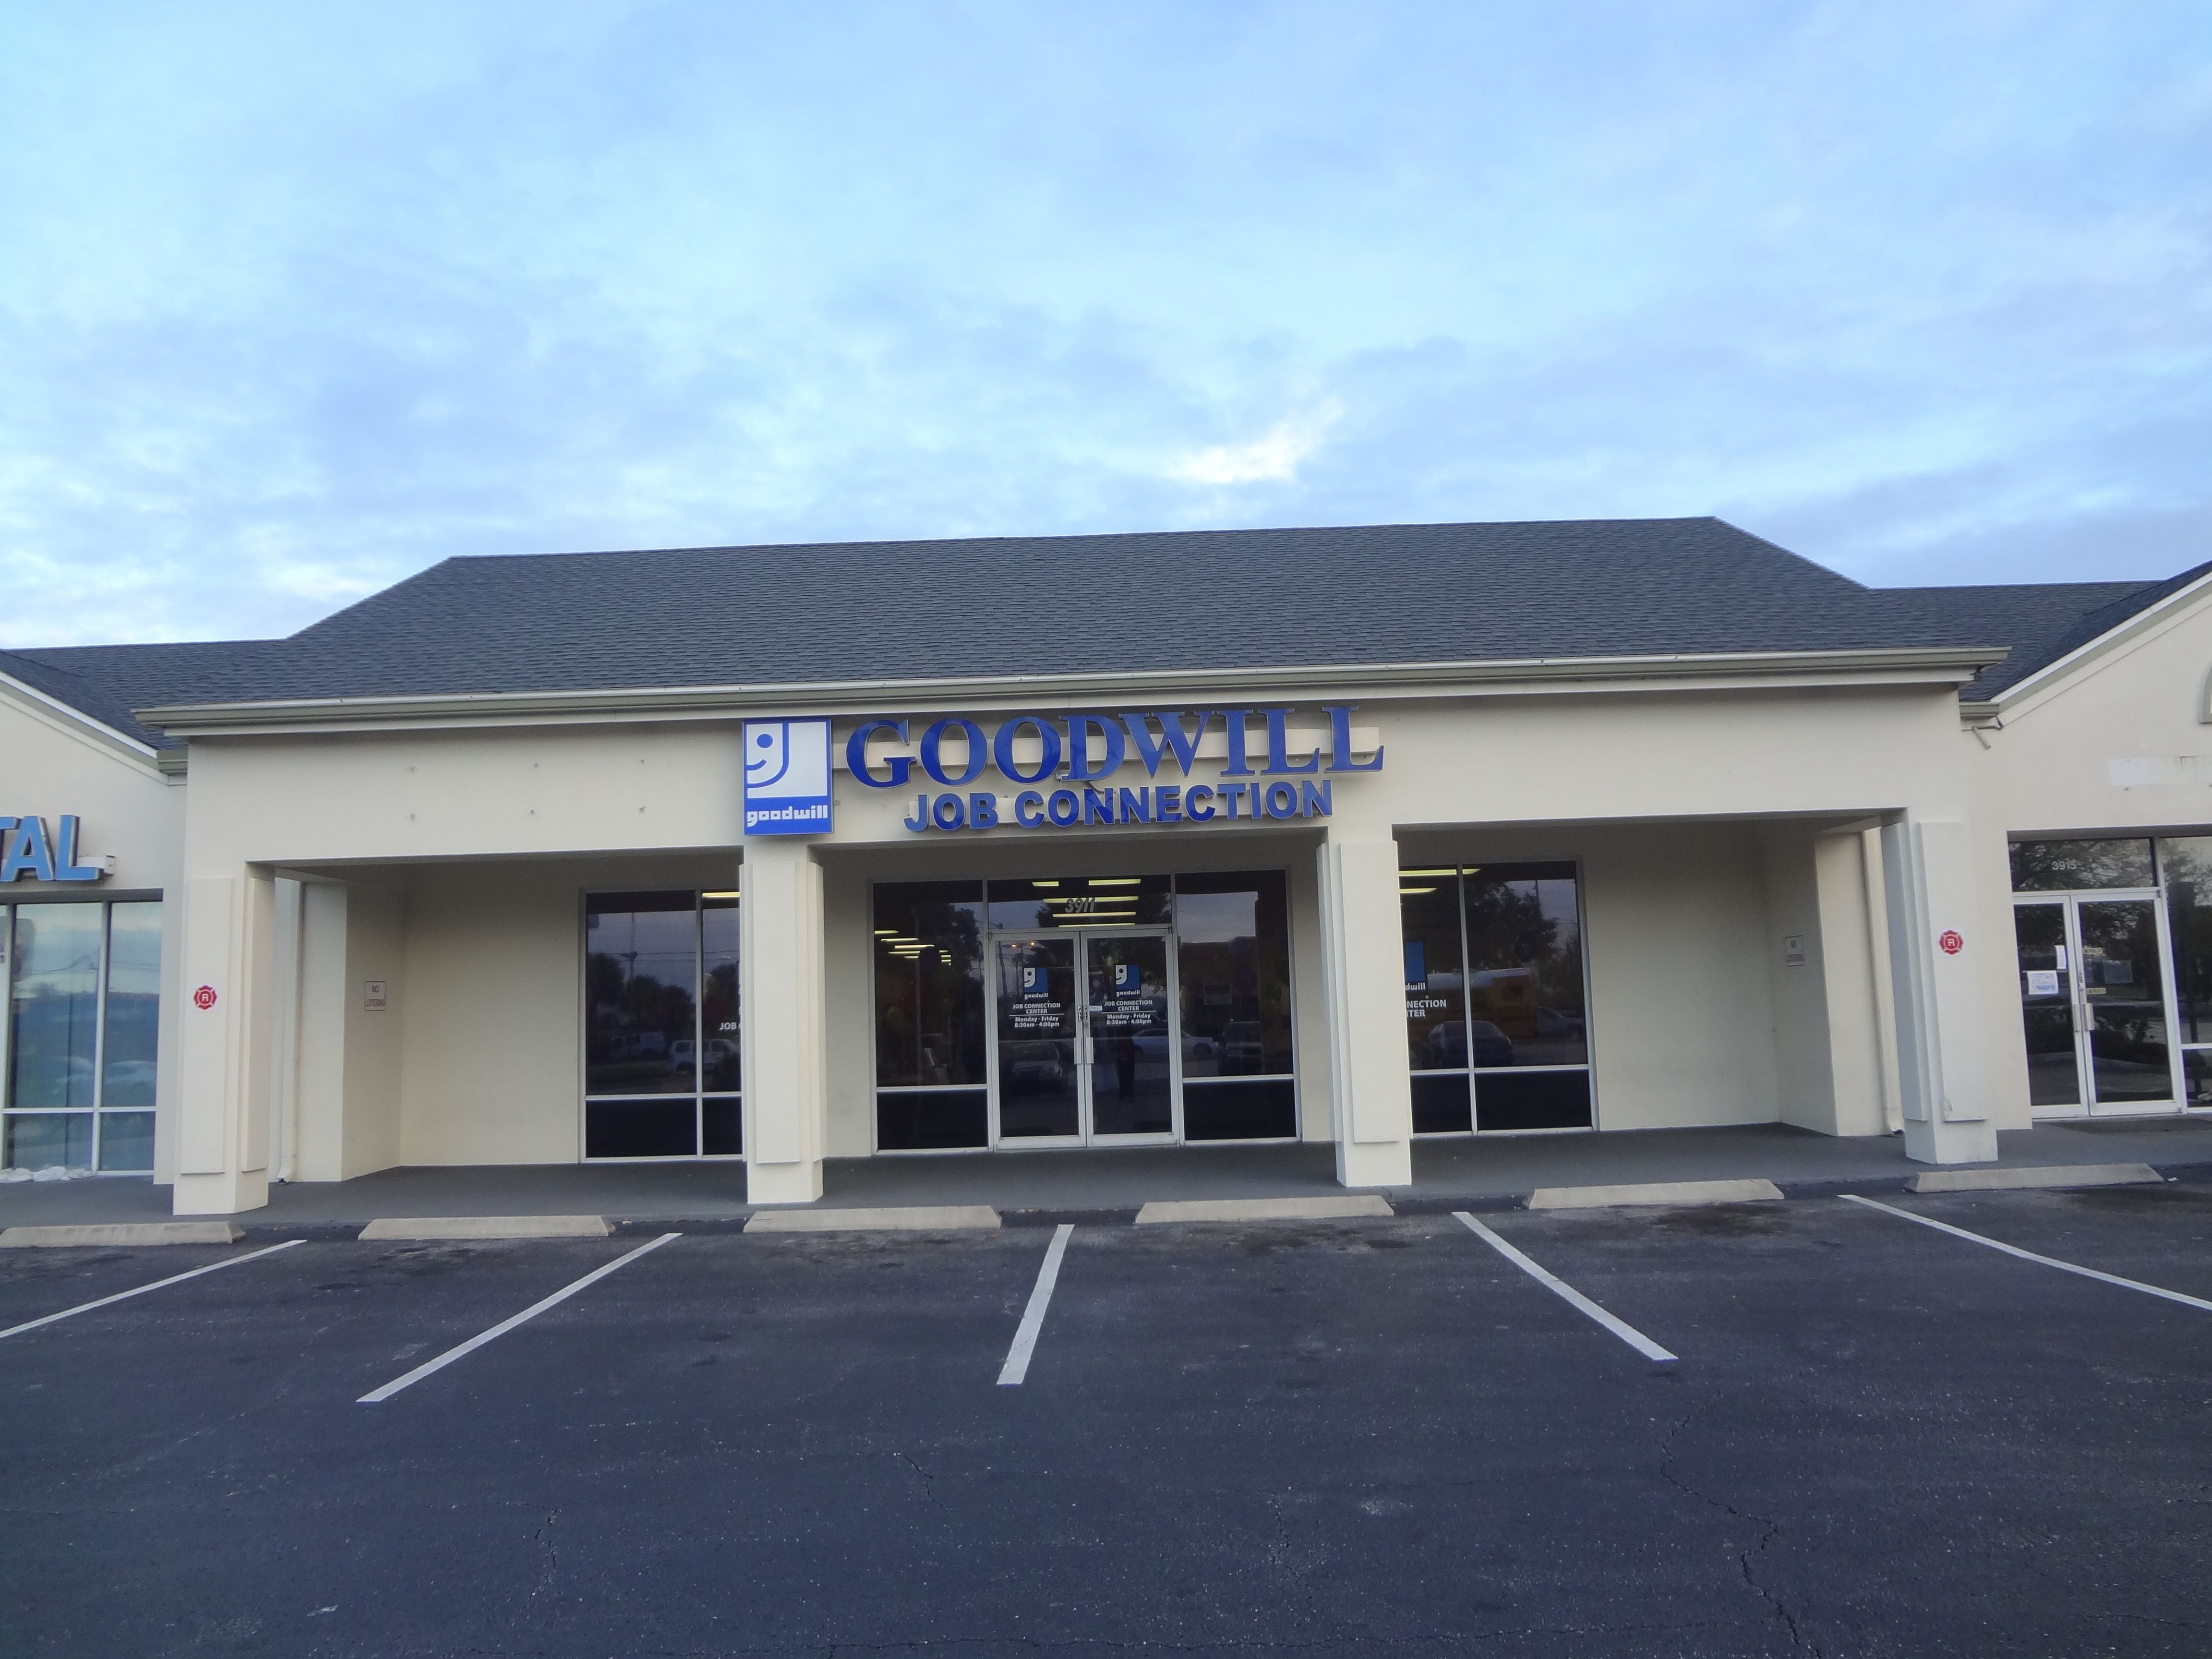 9 best our job connection centers in central florida images on